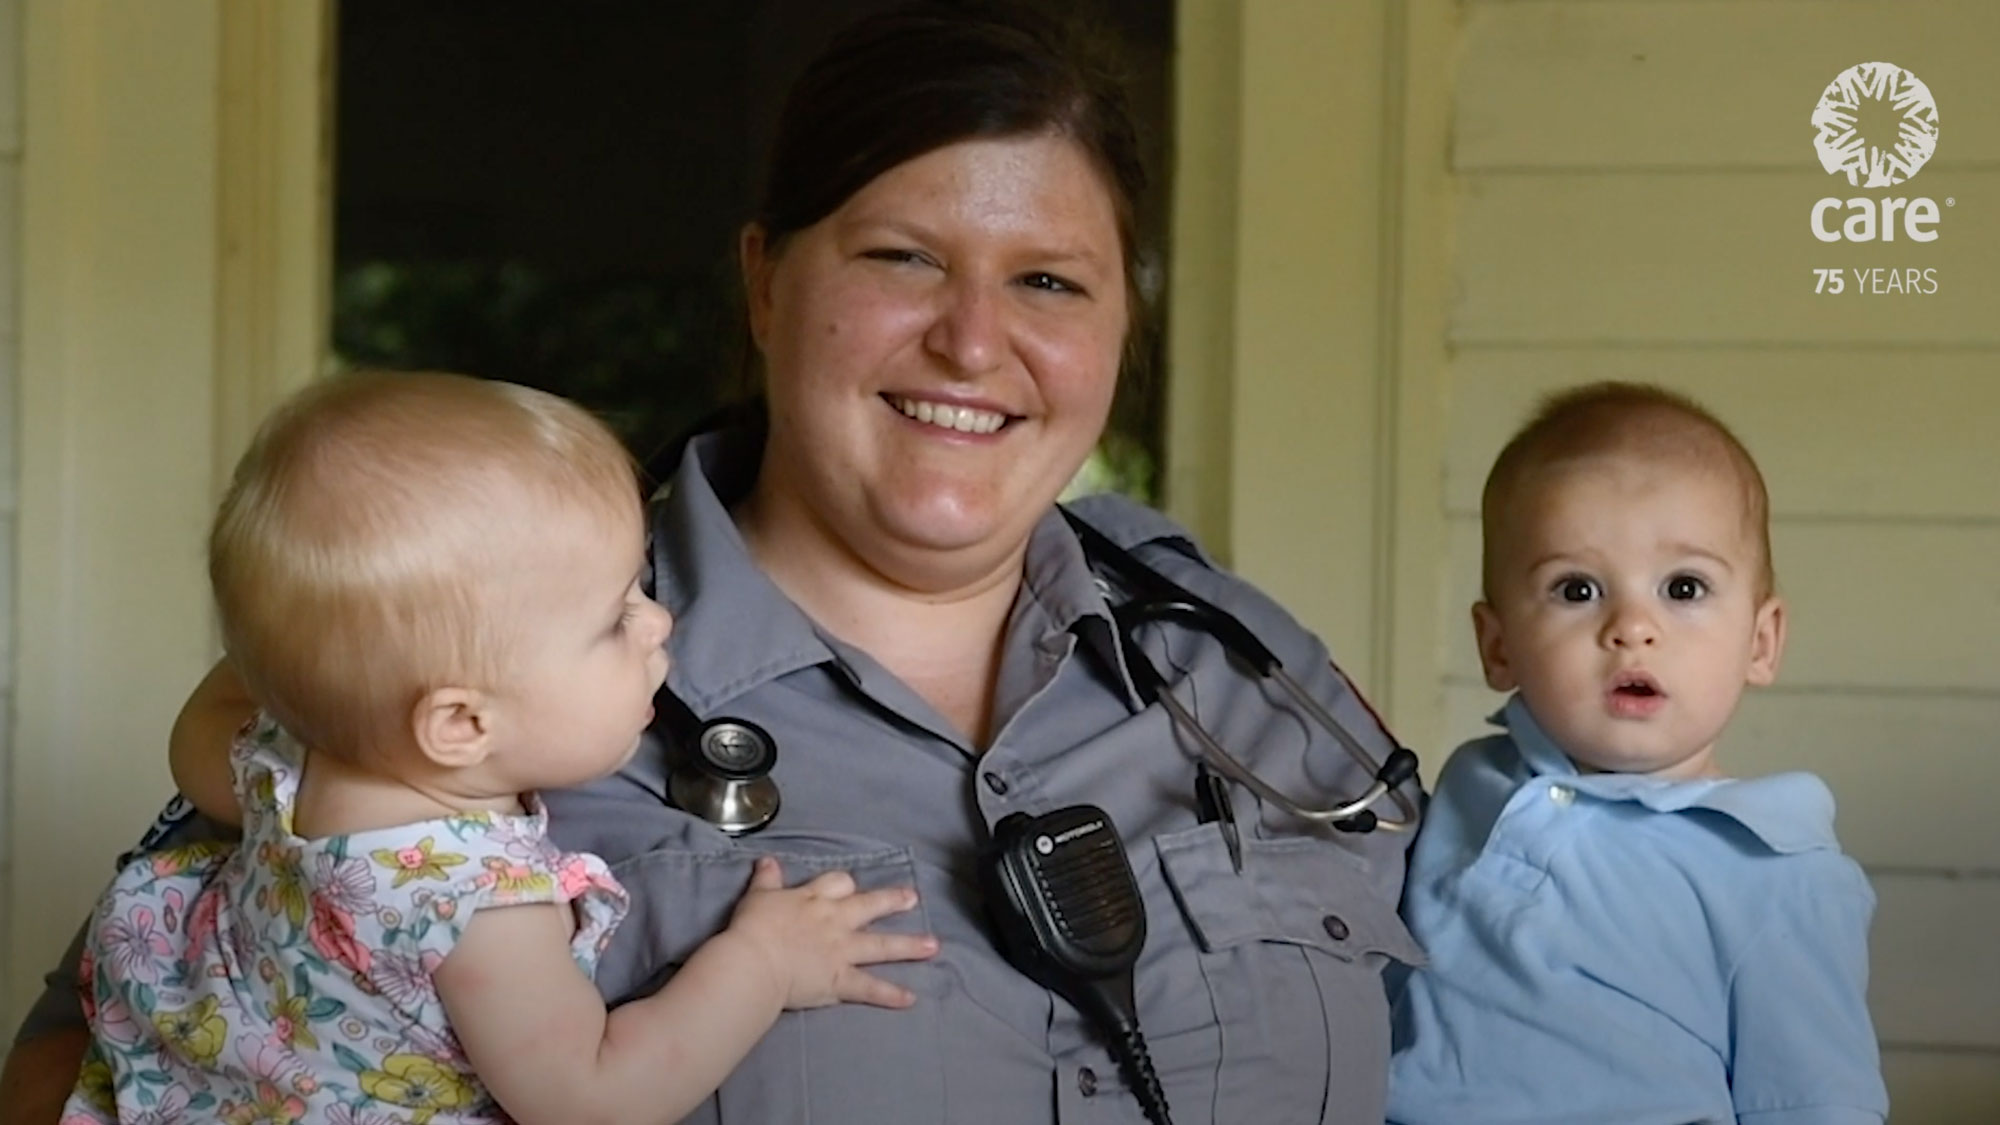 A woman paramedic smiles and hold two small children in her arms on the front porch of a house.